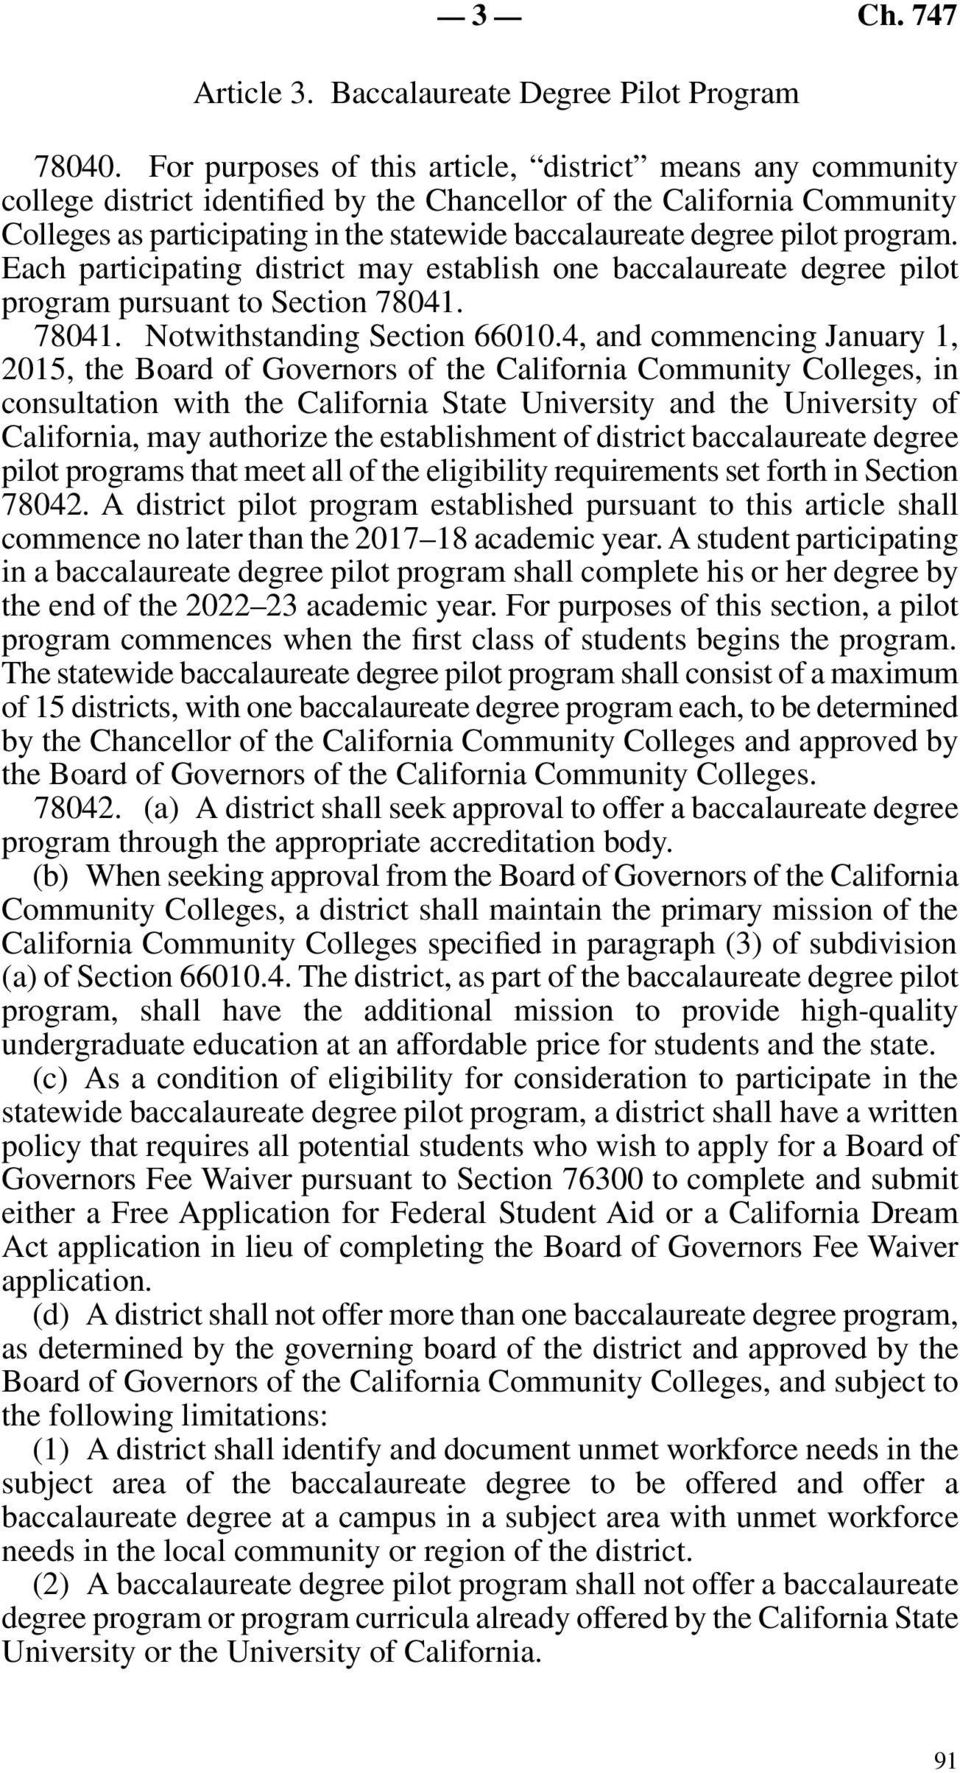 pilot program. Each participating district may establish one baccalaureate degree pilot program pursuant to Section 78041. 78041. Notwithstanding Section 66010.